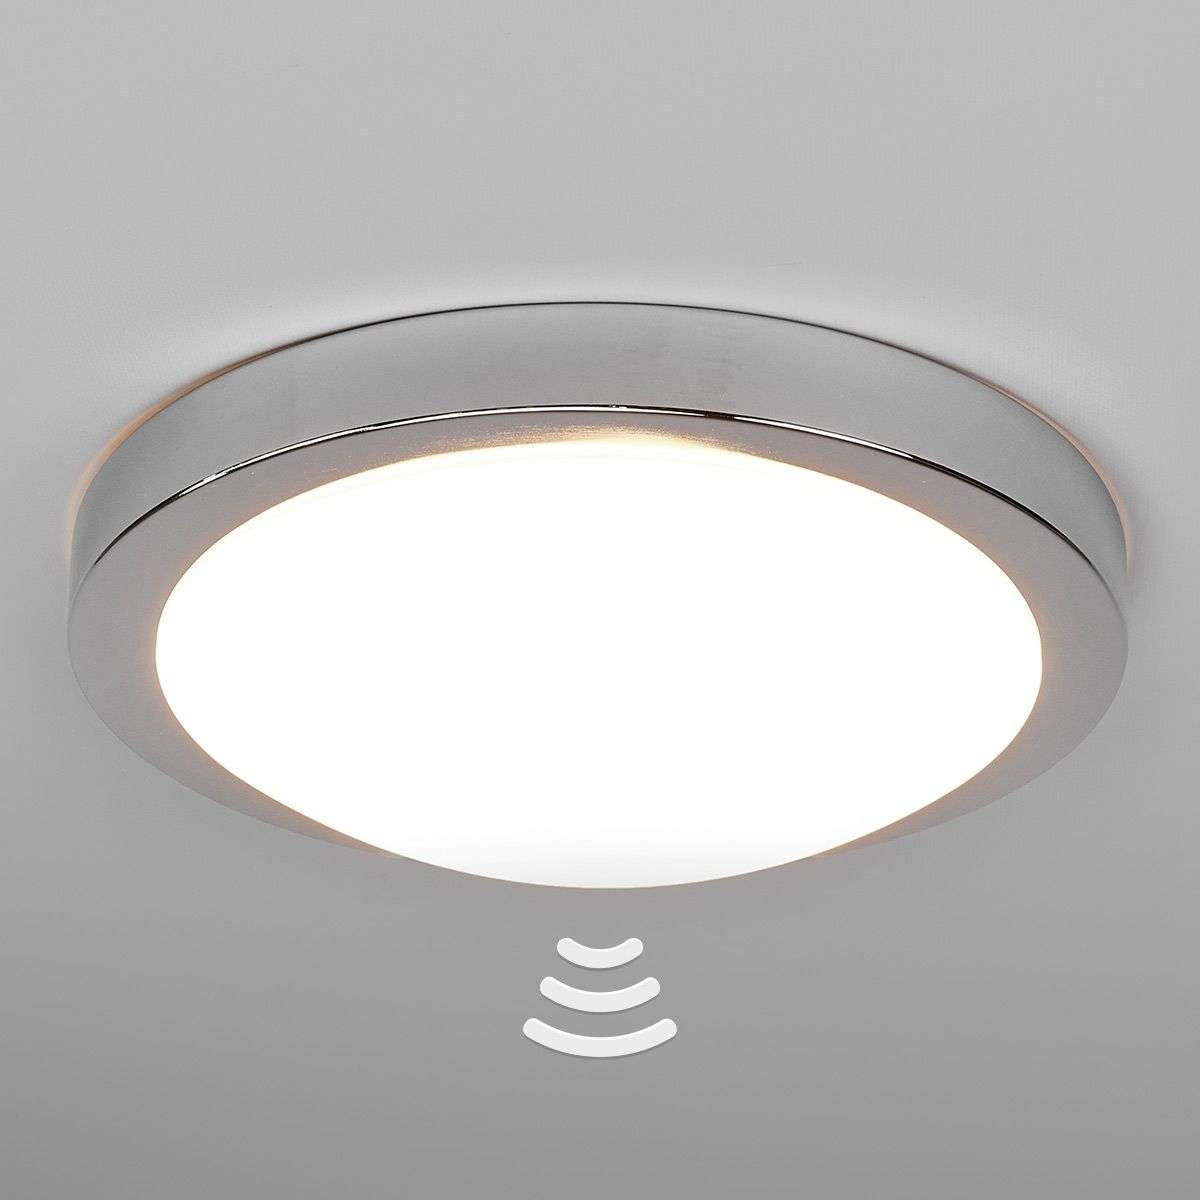 Aras led bathroom ceiling lamp sensor chrome lights aras led bathroom ceiling lamp sensor chrome aloadofball Choice Image